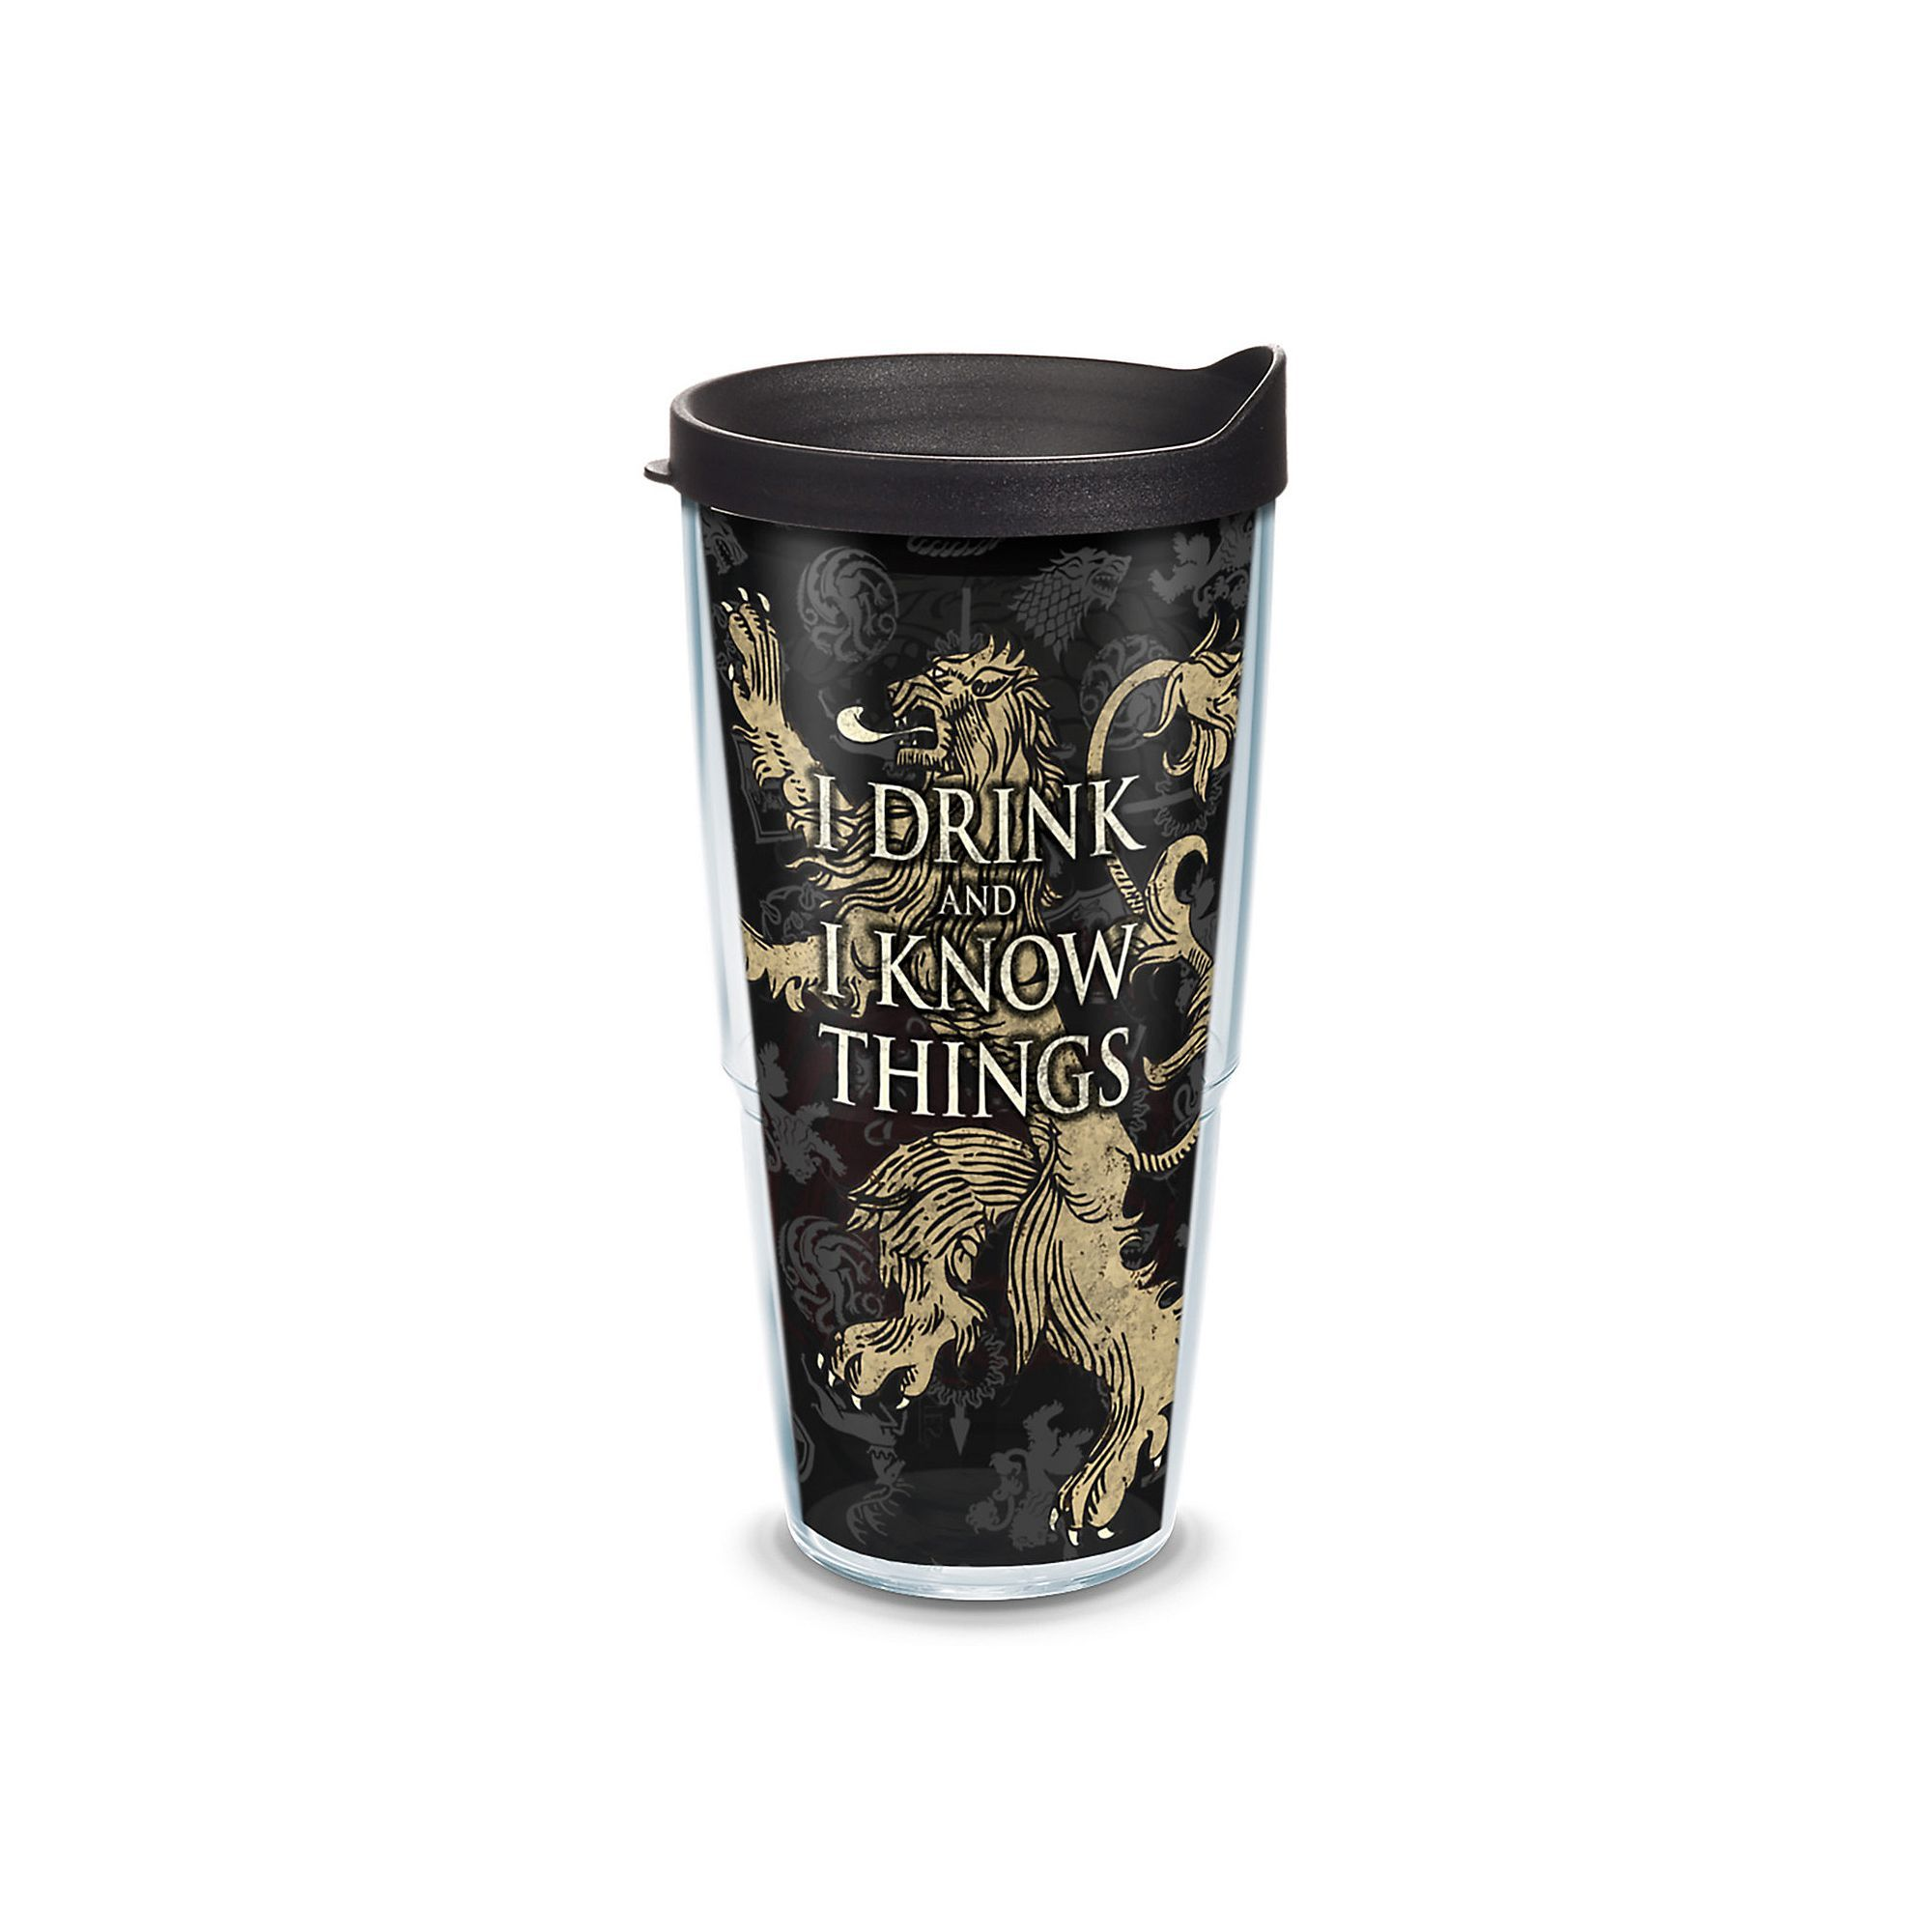 I Drink and I Know Things Game of Thrones Tervis 16 oz Tumbler with Black Lid